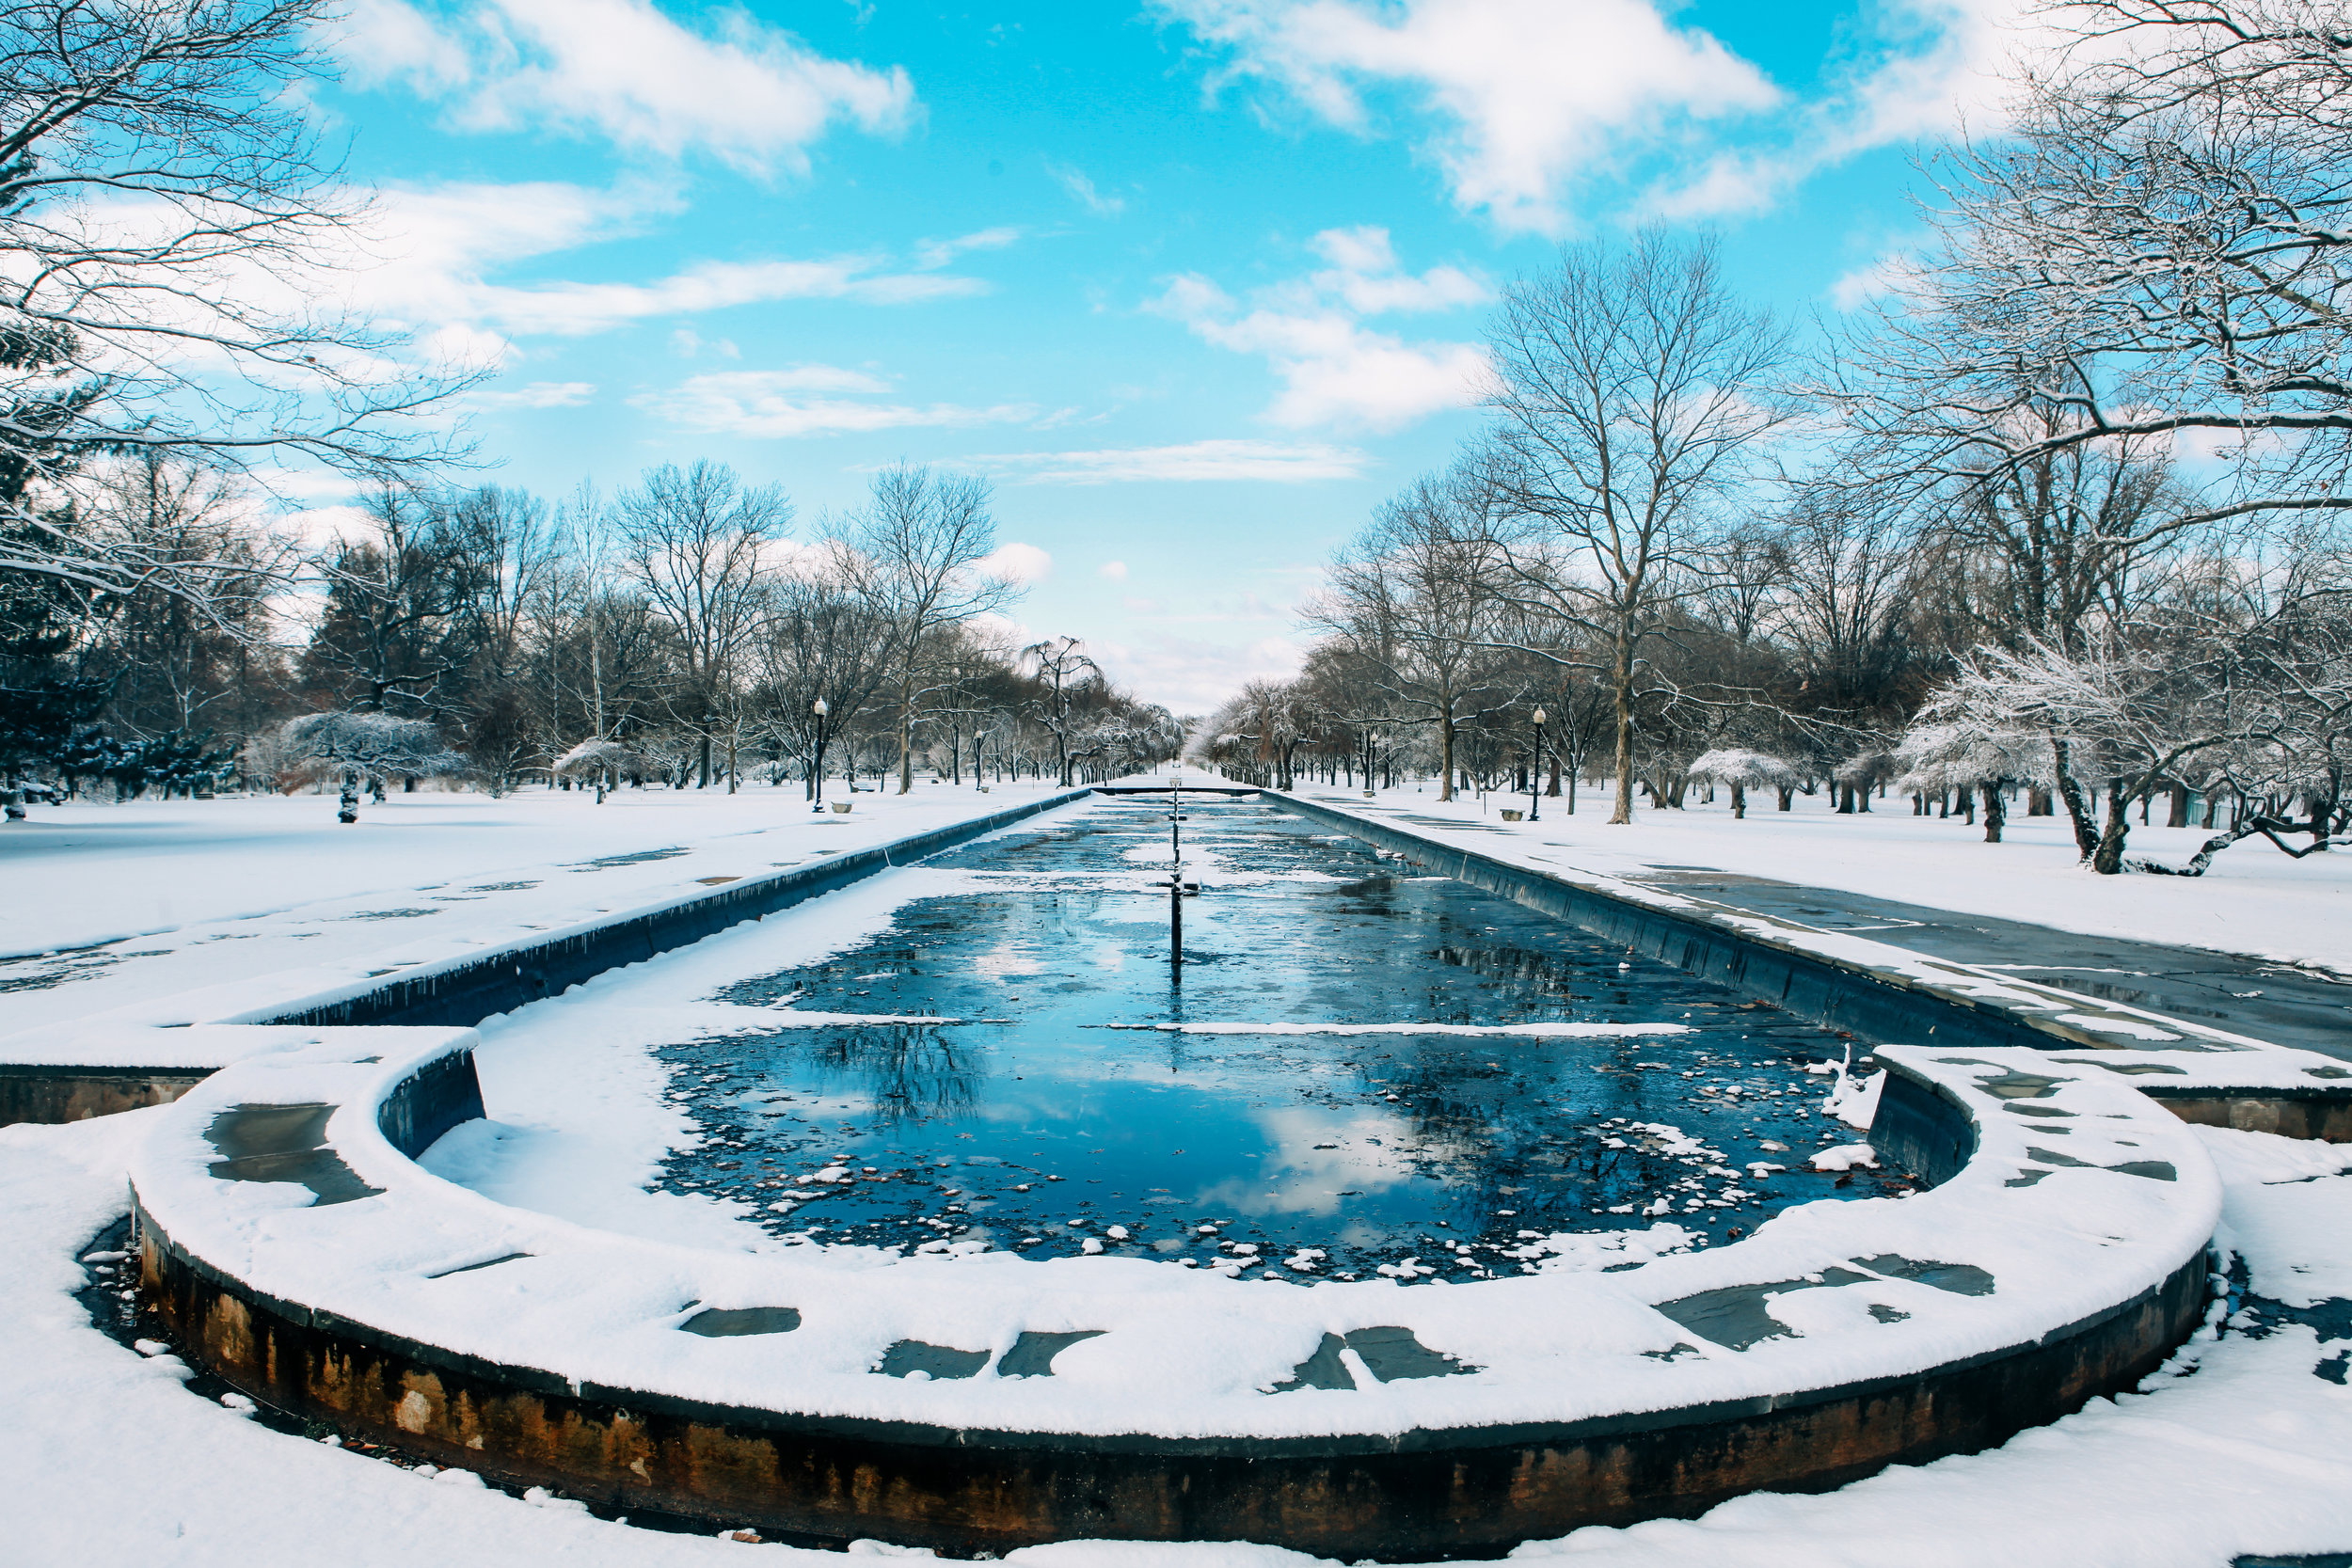 20170209_Philadelphia_Snow_Fiarmount_Park_Joe_Mac_Creative_0007.jpg